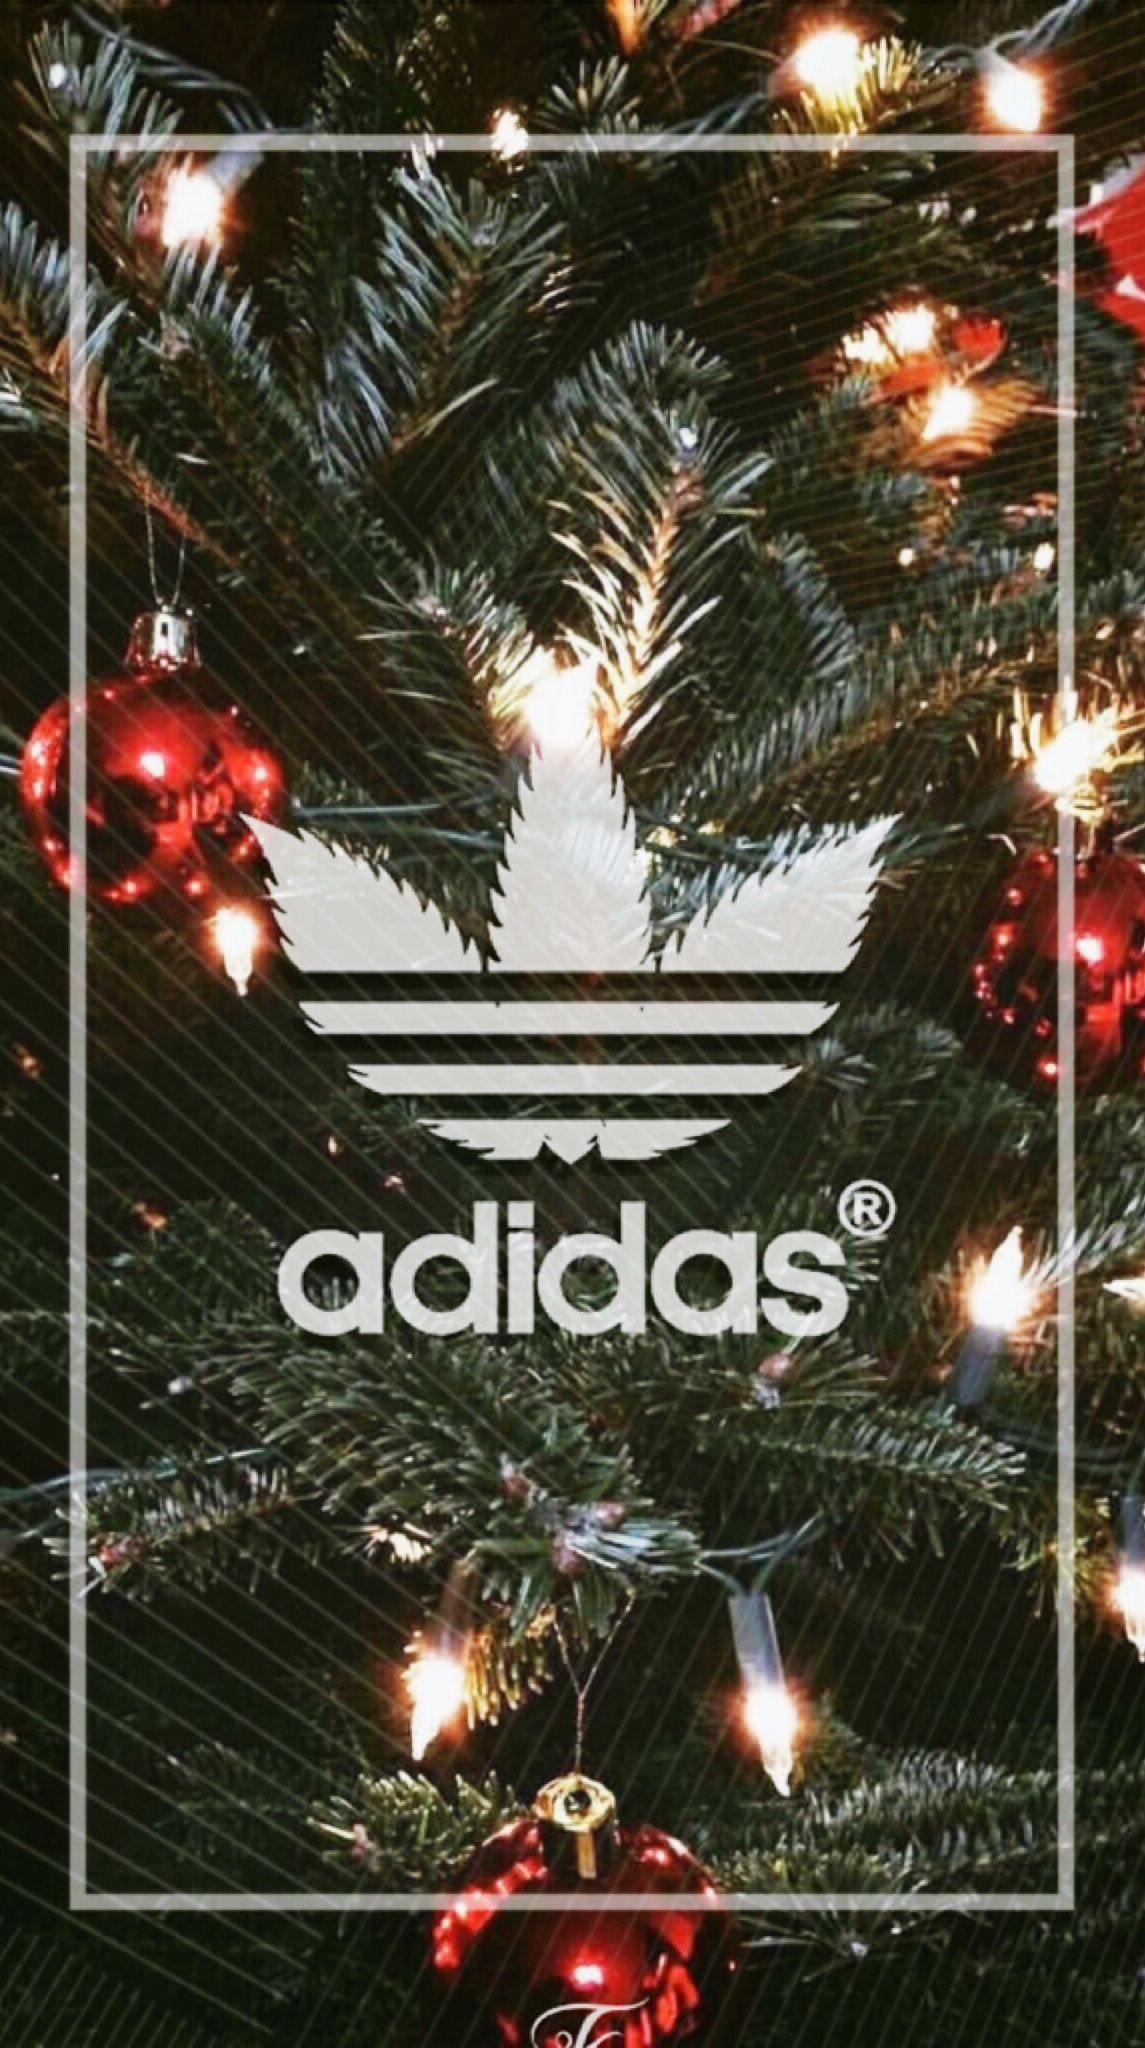 Industrializar perder télex  Christmas with Adidas 1 #adidas #christmas #christmaswallpaper  #christmastreewallpaper #chris… | Wallpaper iphone christmas, New wallpaper  iphone, Adidas wallpapers